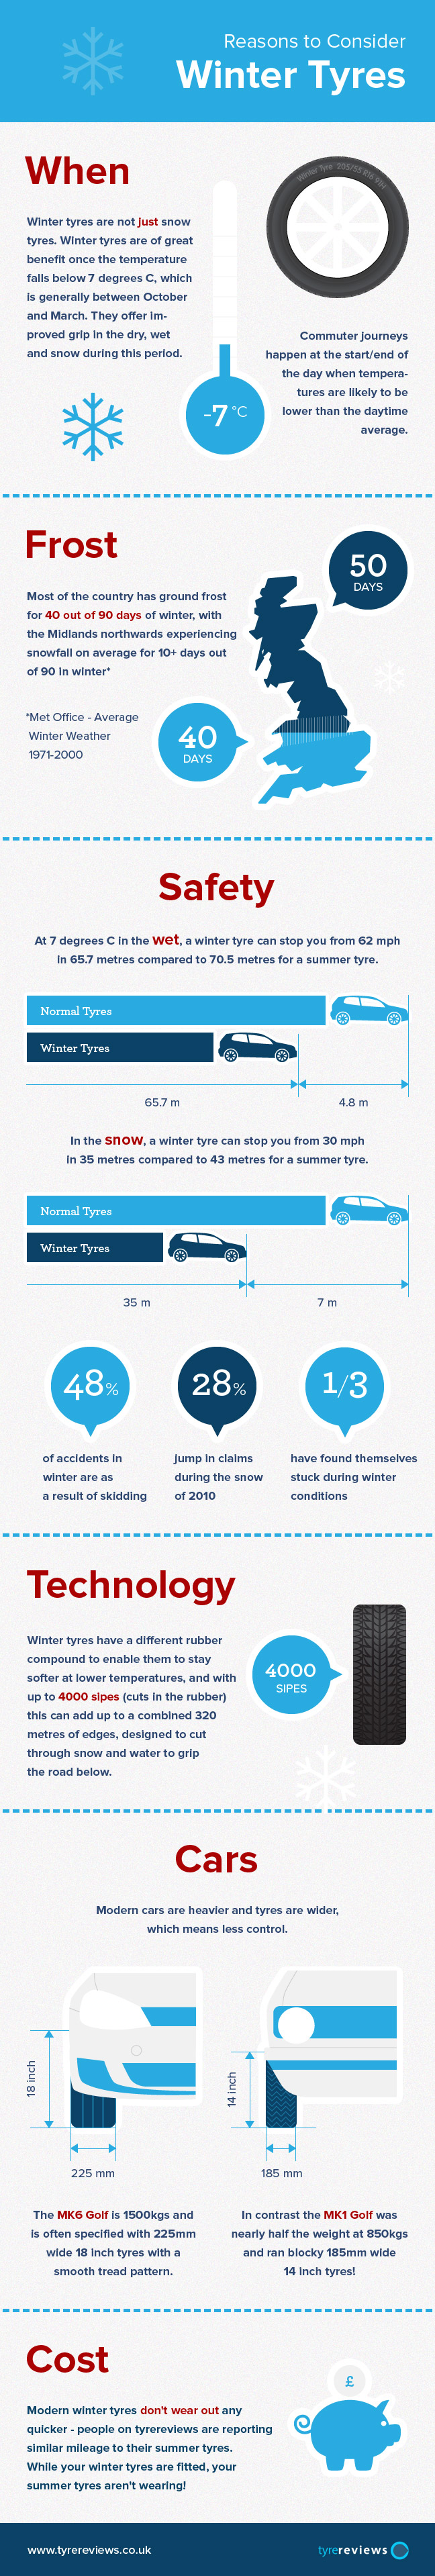 Reasons to Consider Winter Tyres - Infographic